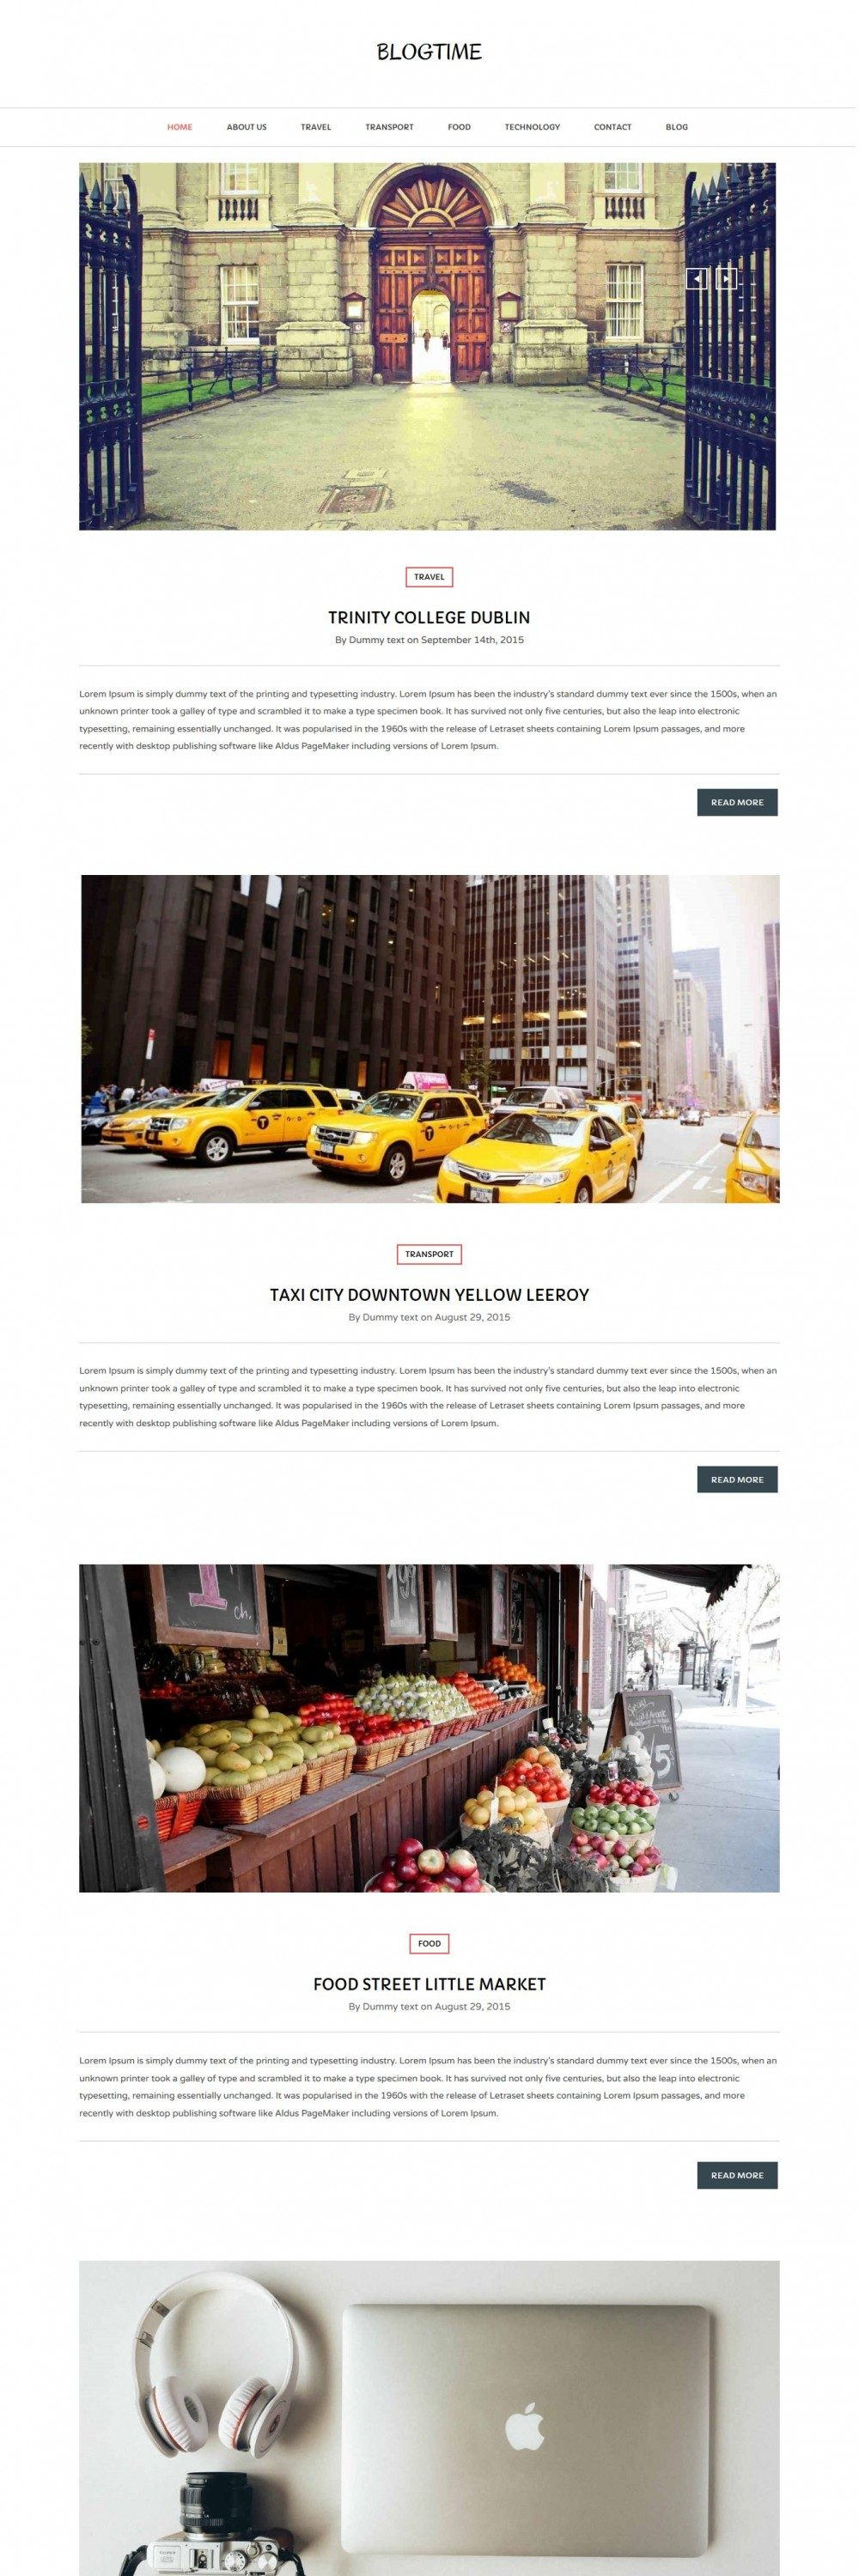 Blog Time - Unique Creative Joomla Template for Blog